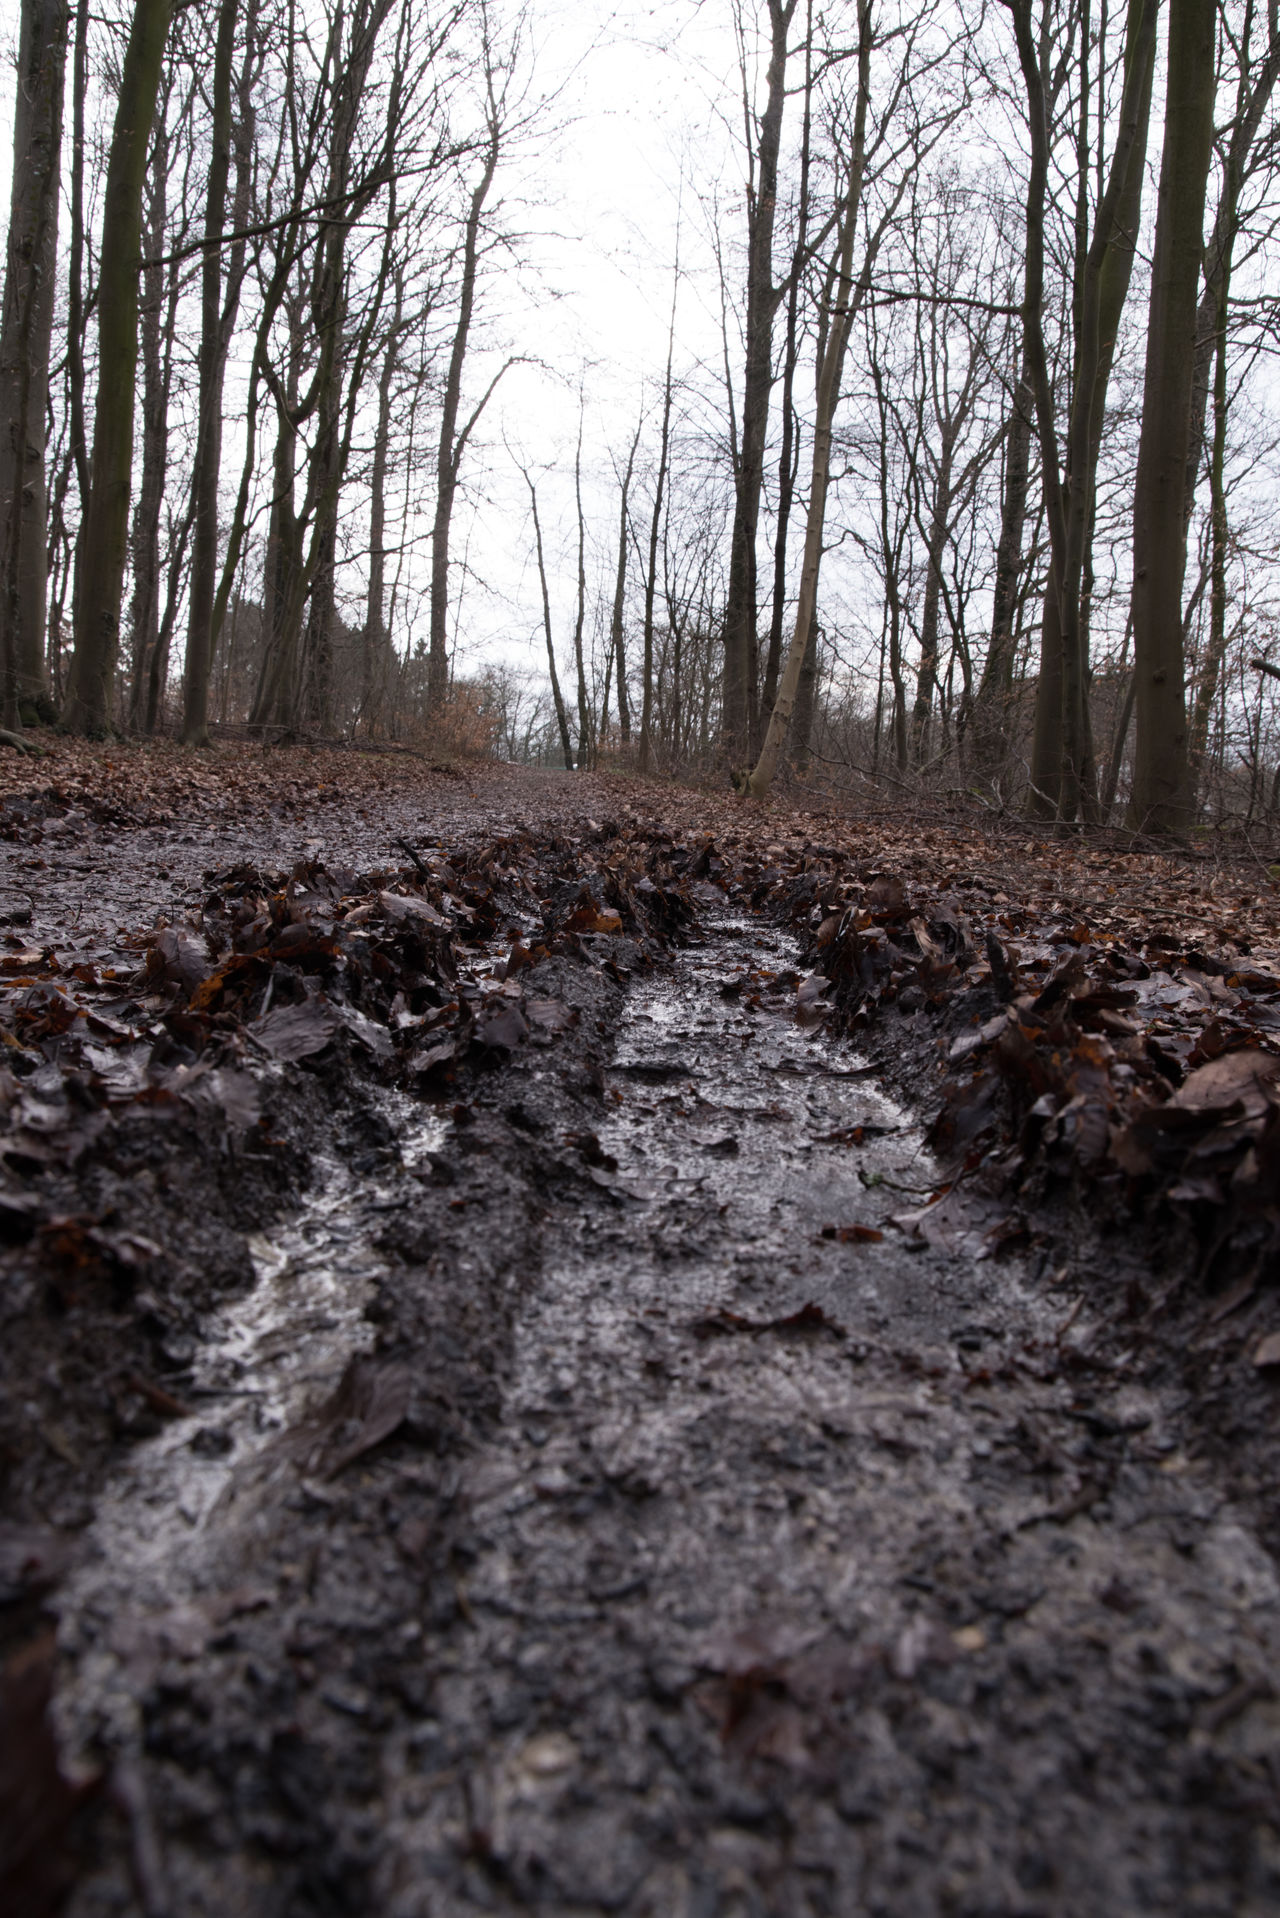 From A Dog's Perspective Bare Trees Beechwood Day Dog's Perspective Forest Low Angle View Muddy No People Outdoors Traces Tree Trunk Trees We Winter